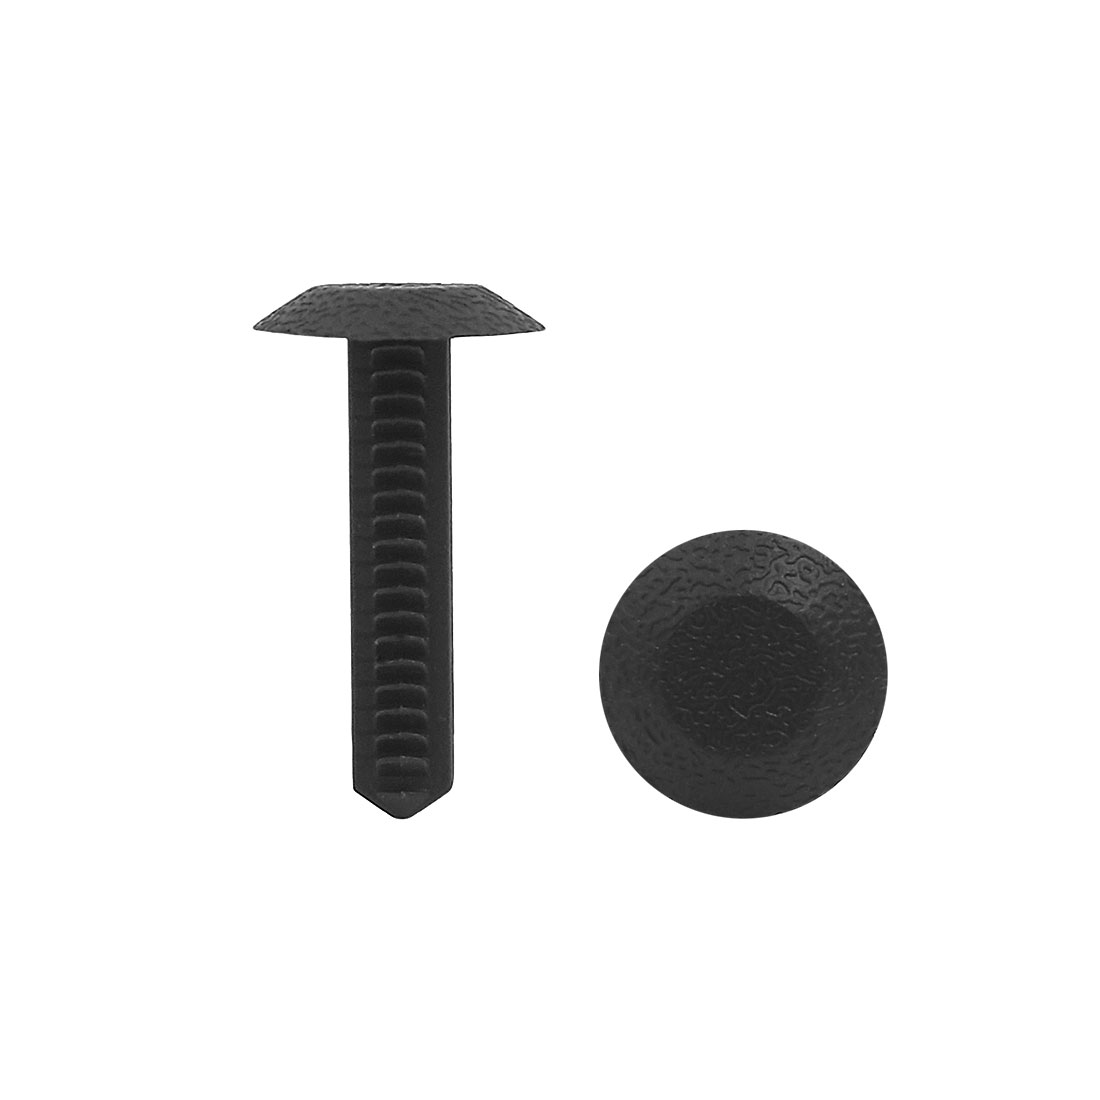 50Pcs Black Plastic Rivets Clips Push Type Bumper Retainer 8mm x 7mm Hole